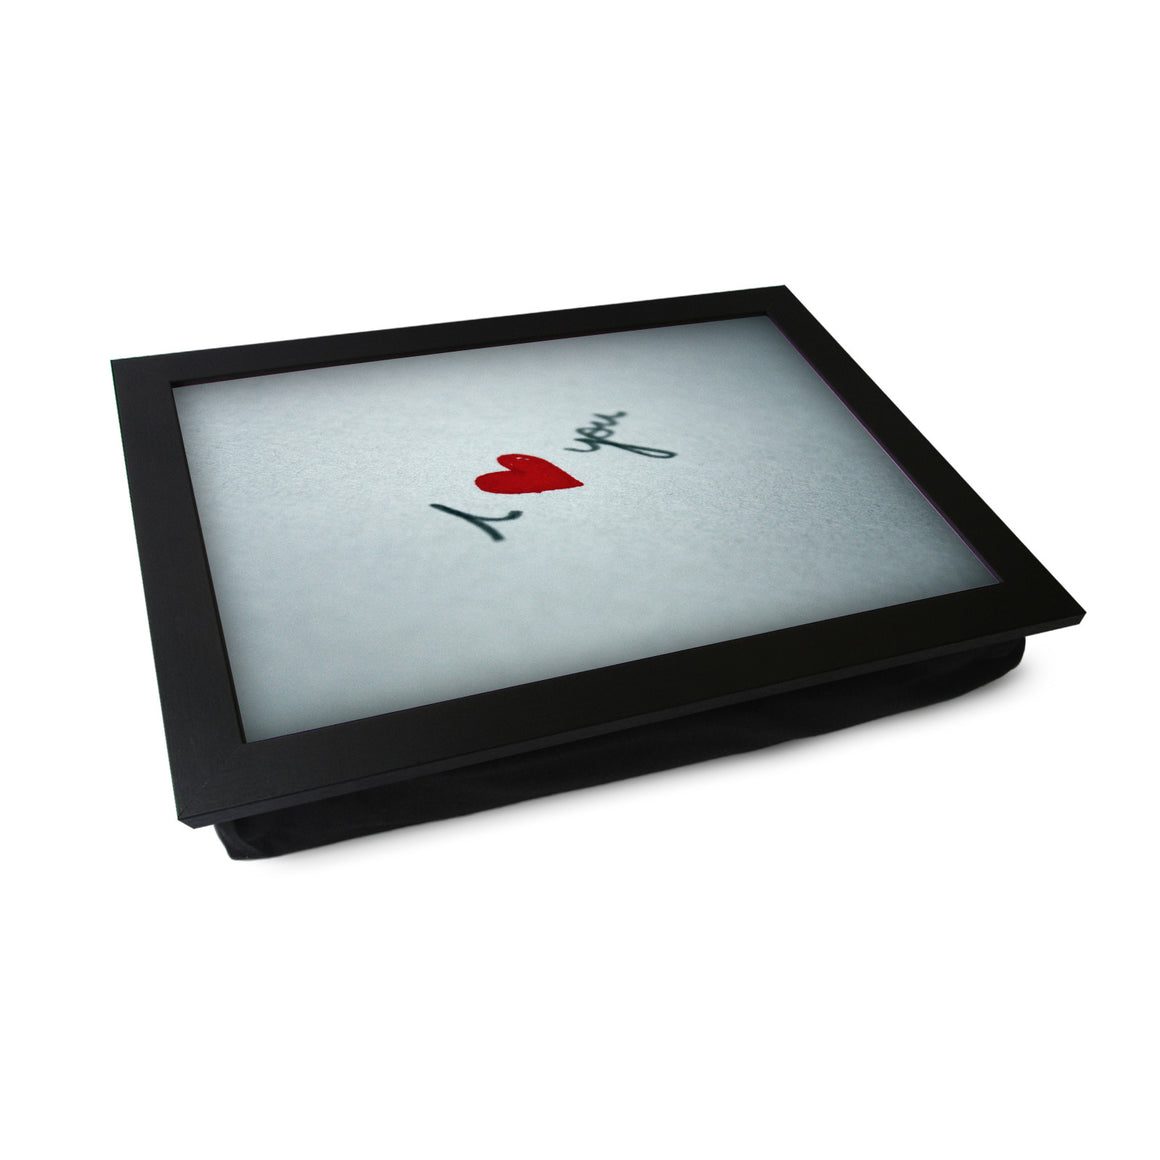 I Heart You Written On Paper Lap Tray - L0454